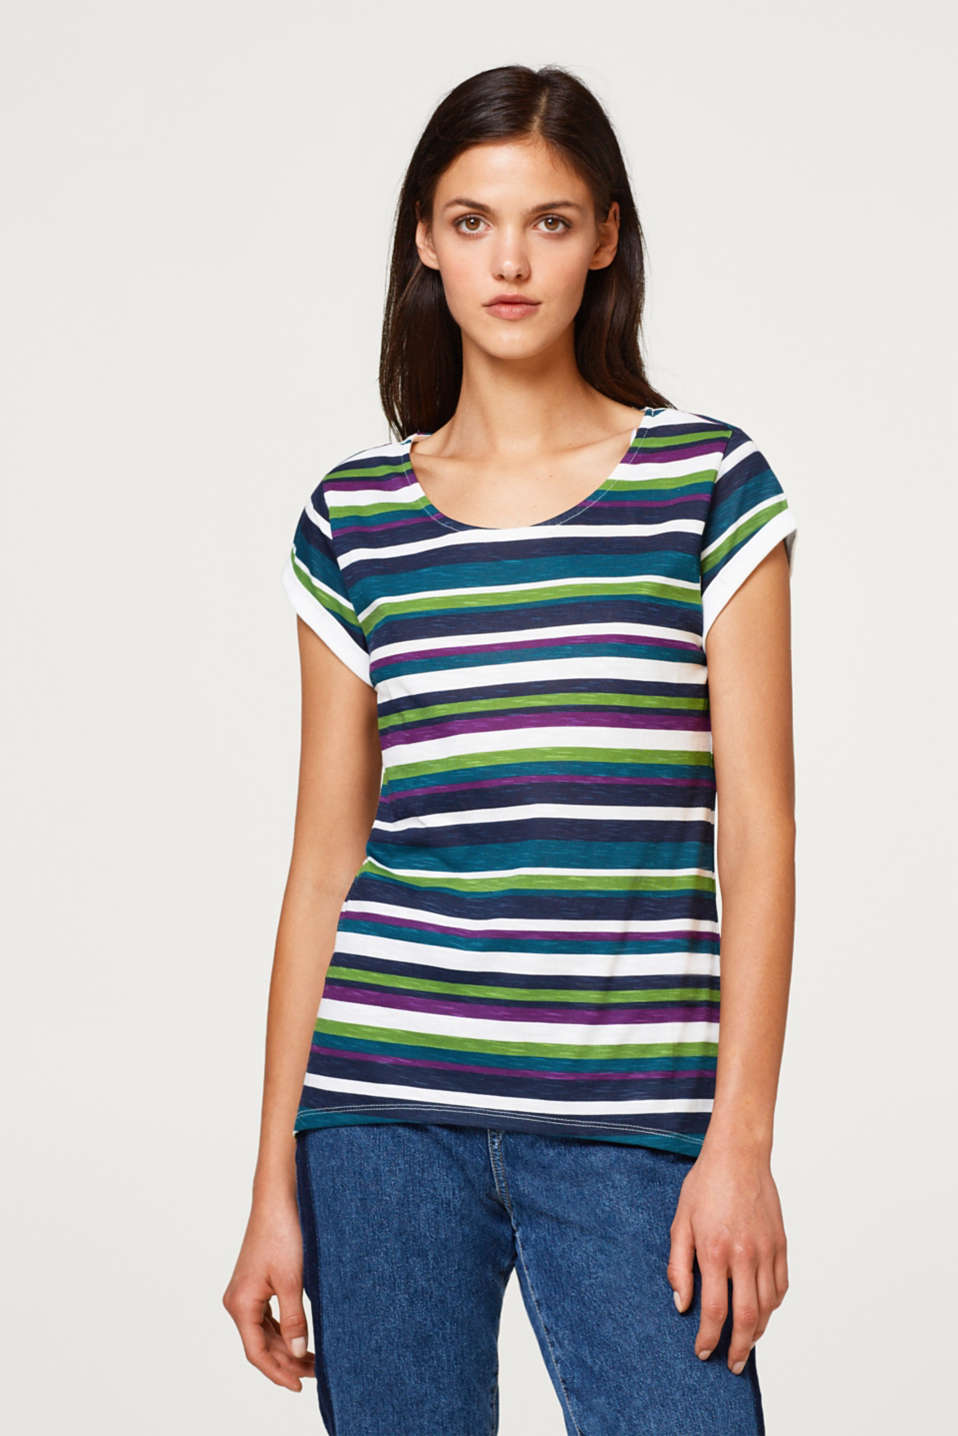 Esprit - Slub top with stripes, 100% cotton